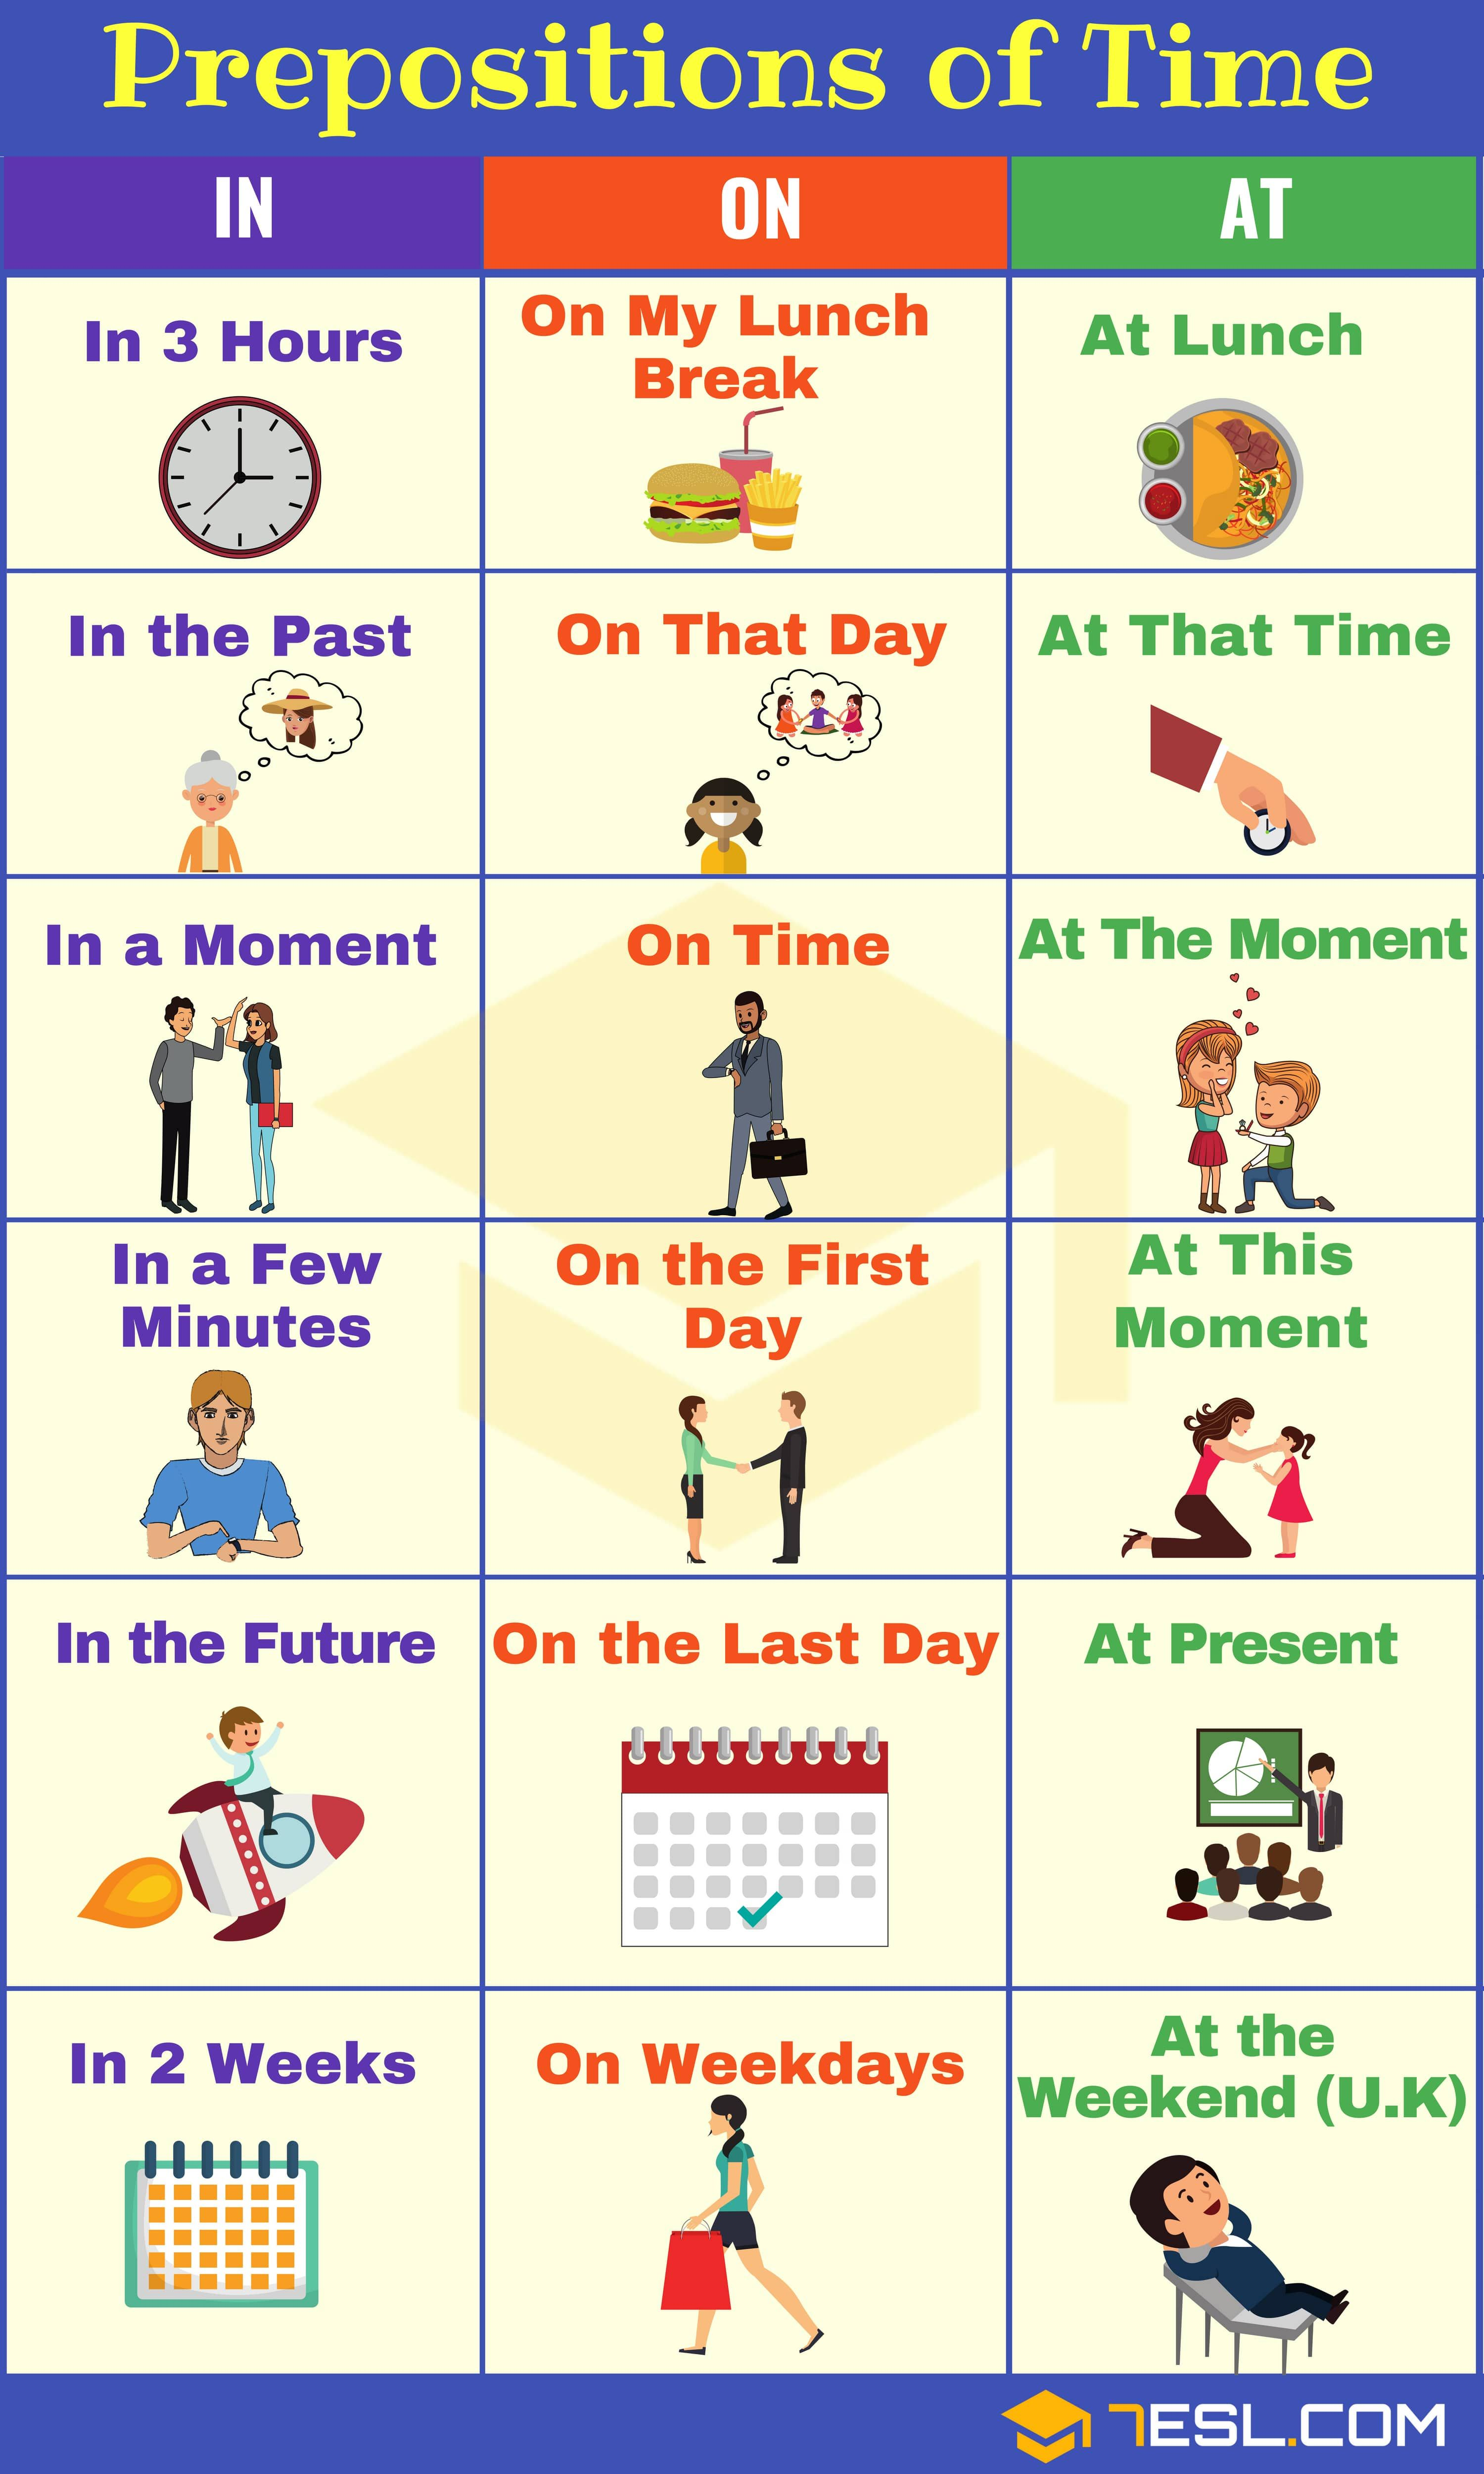 Prepositions Of Time Useful List Meaning Amp Examples Mit